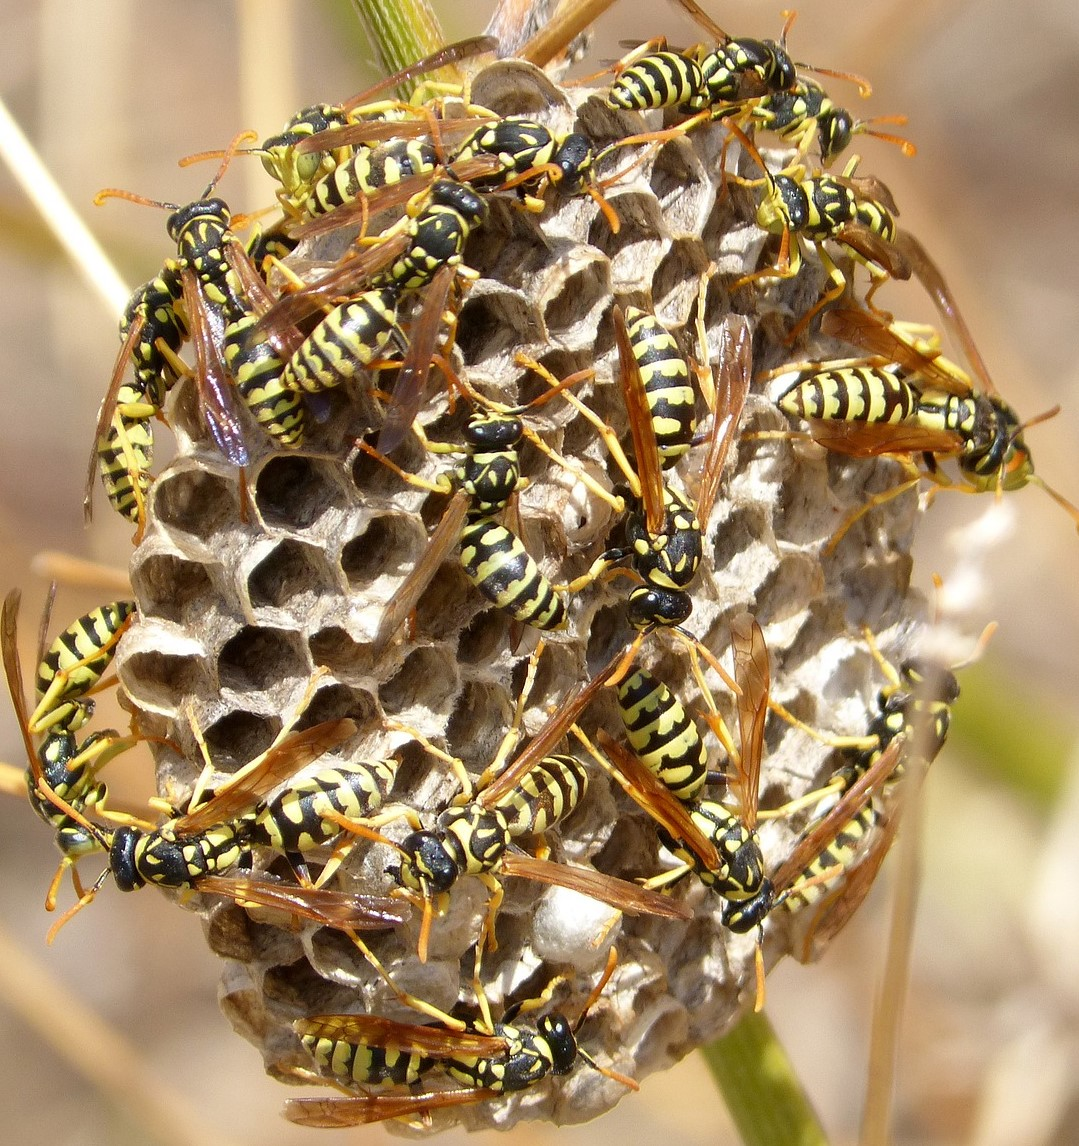 Image of paper wasp nest